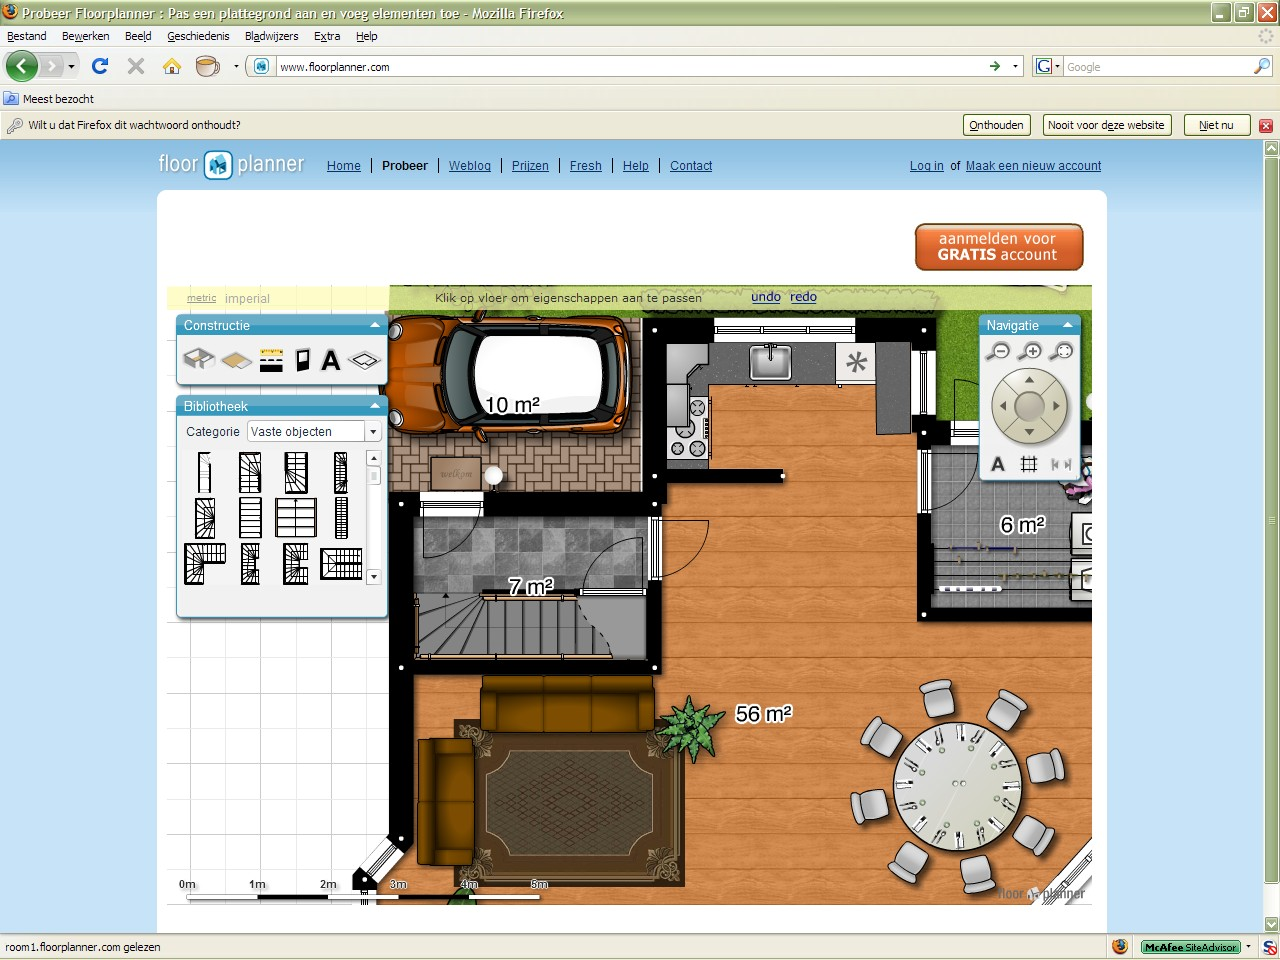 Floorplanner gratis downloaden computer idee for Floorplanner software